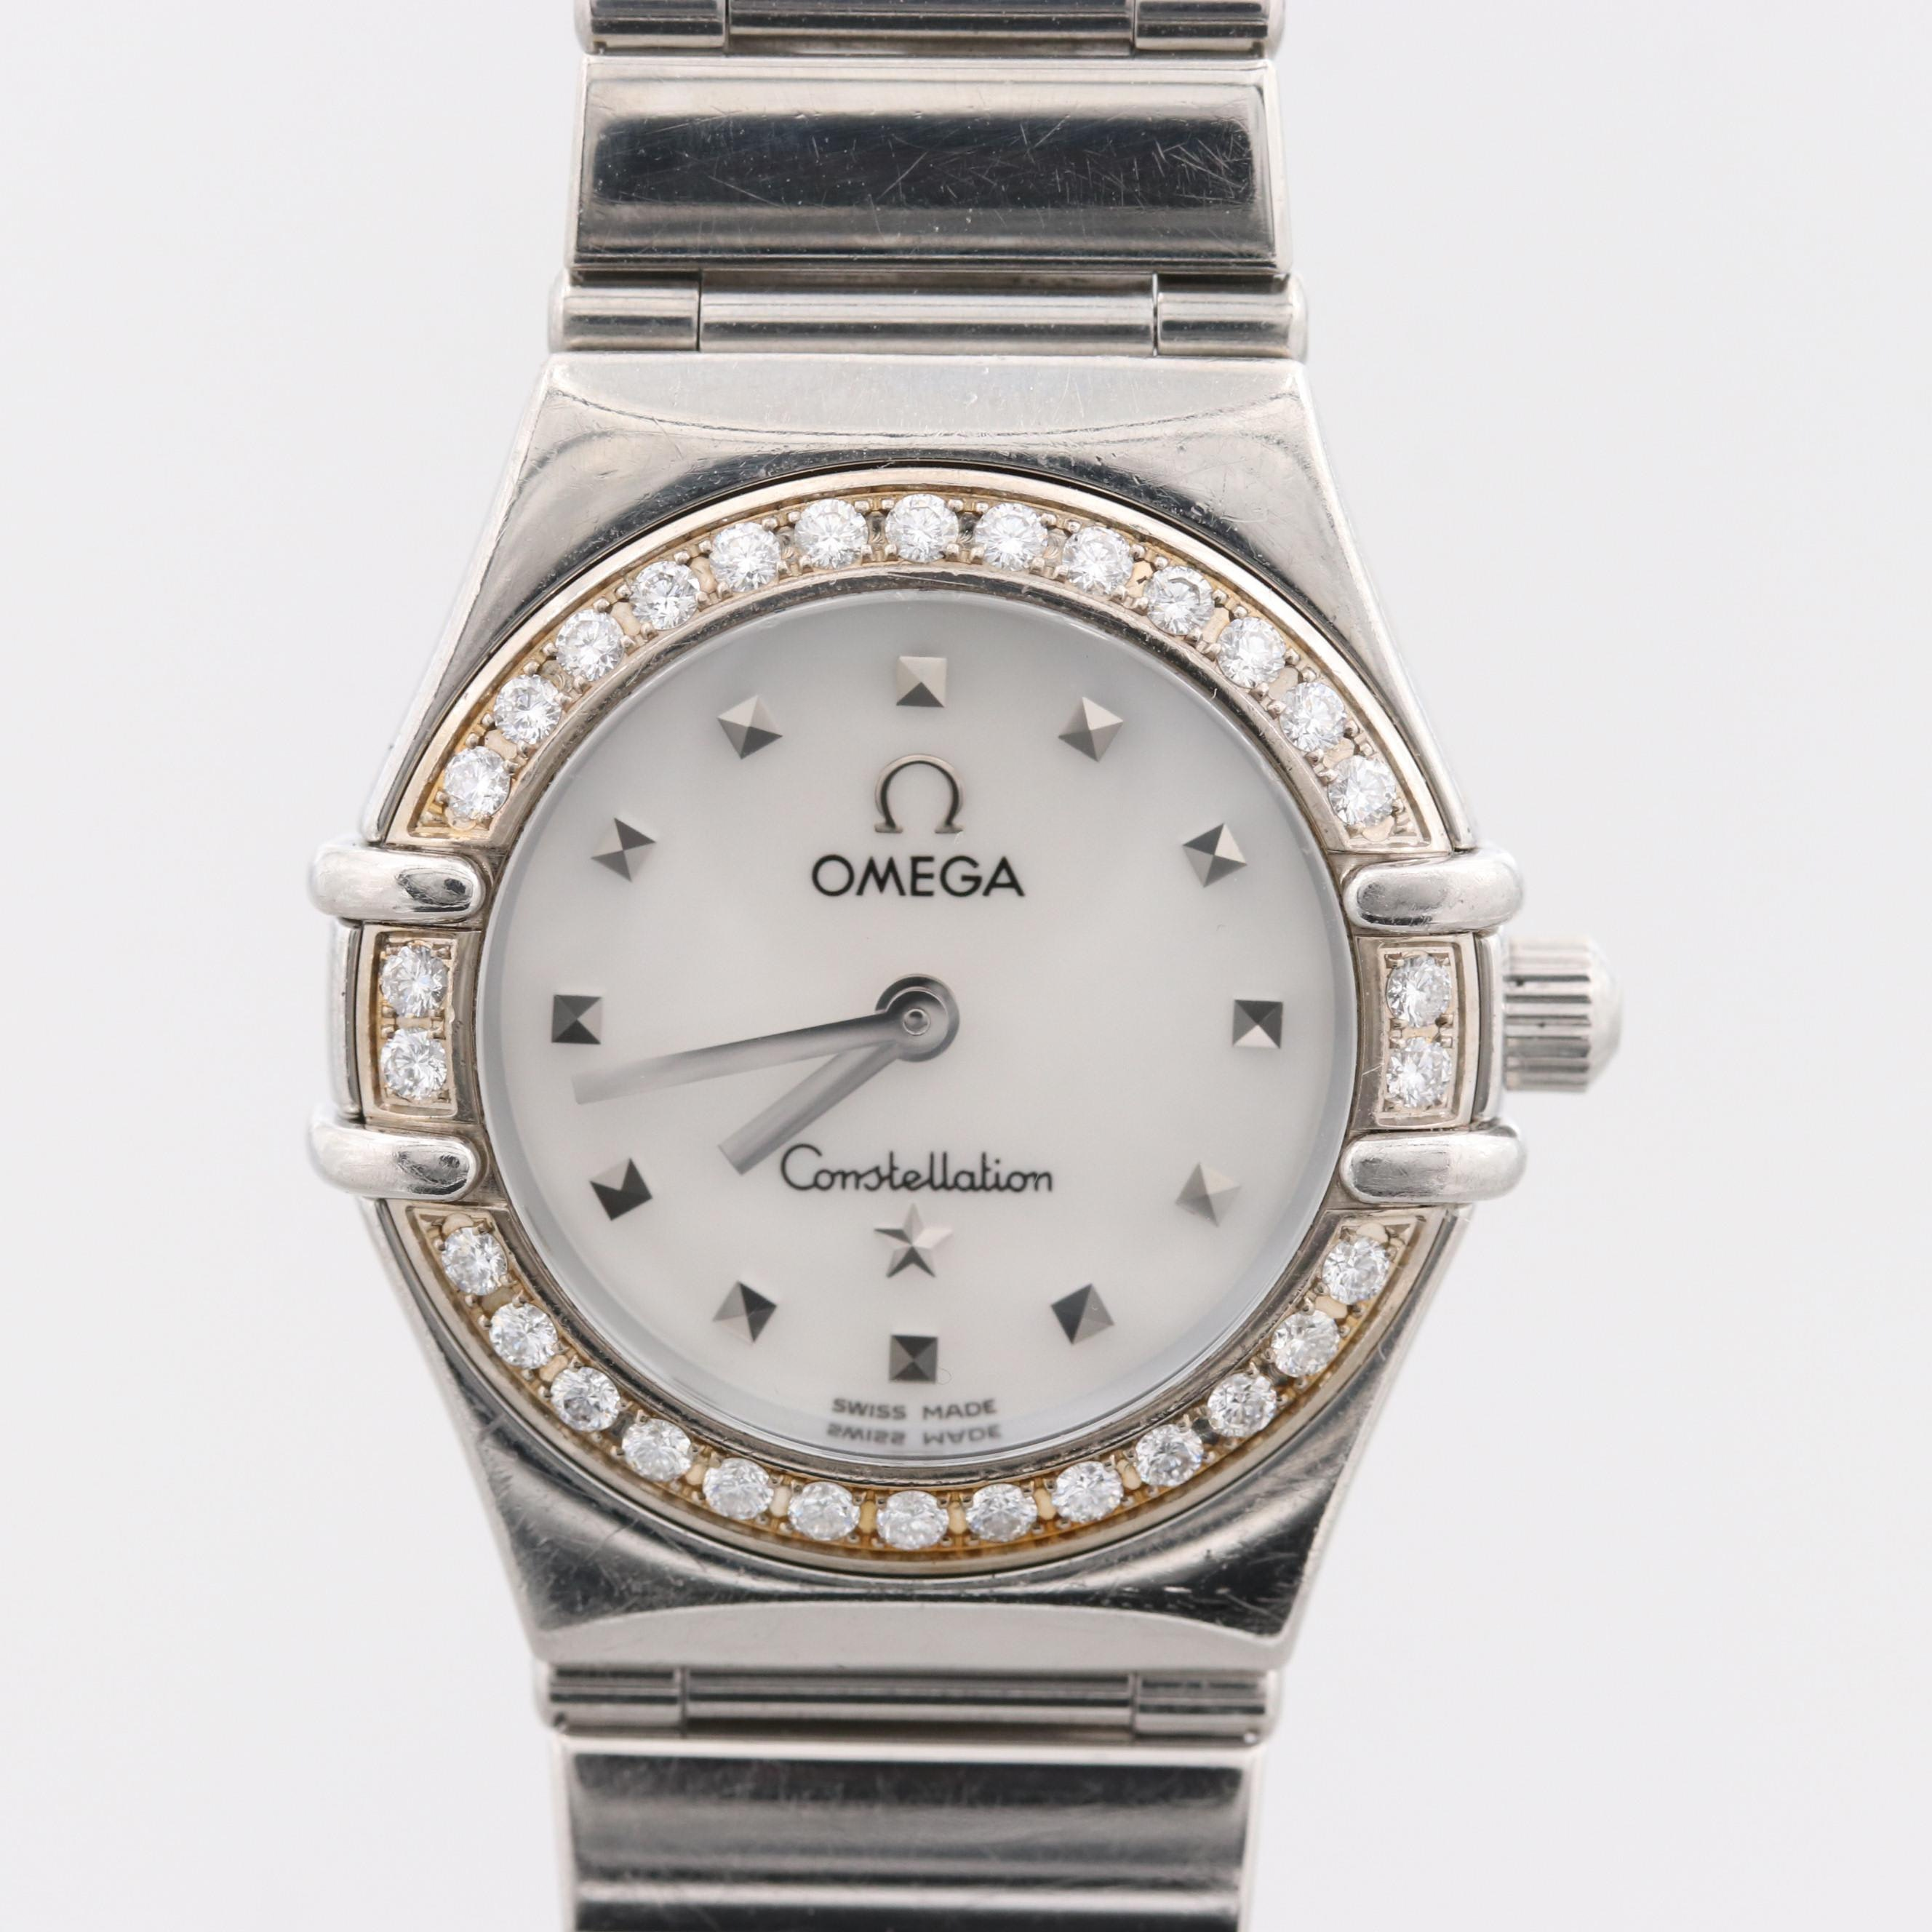 Omega Constellation Wristwatch With Diamond Bezel and Mother of Pearl Dial